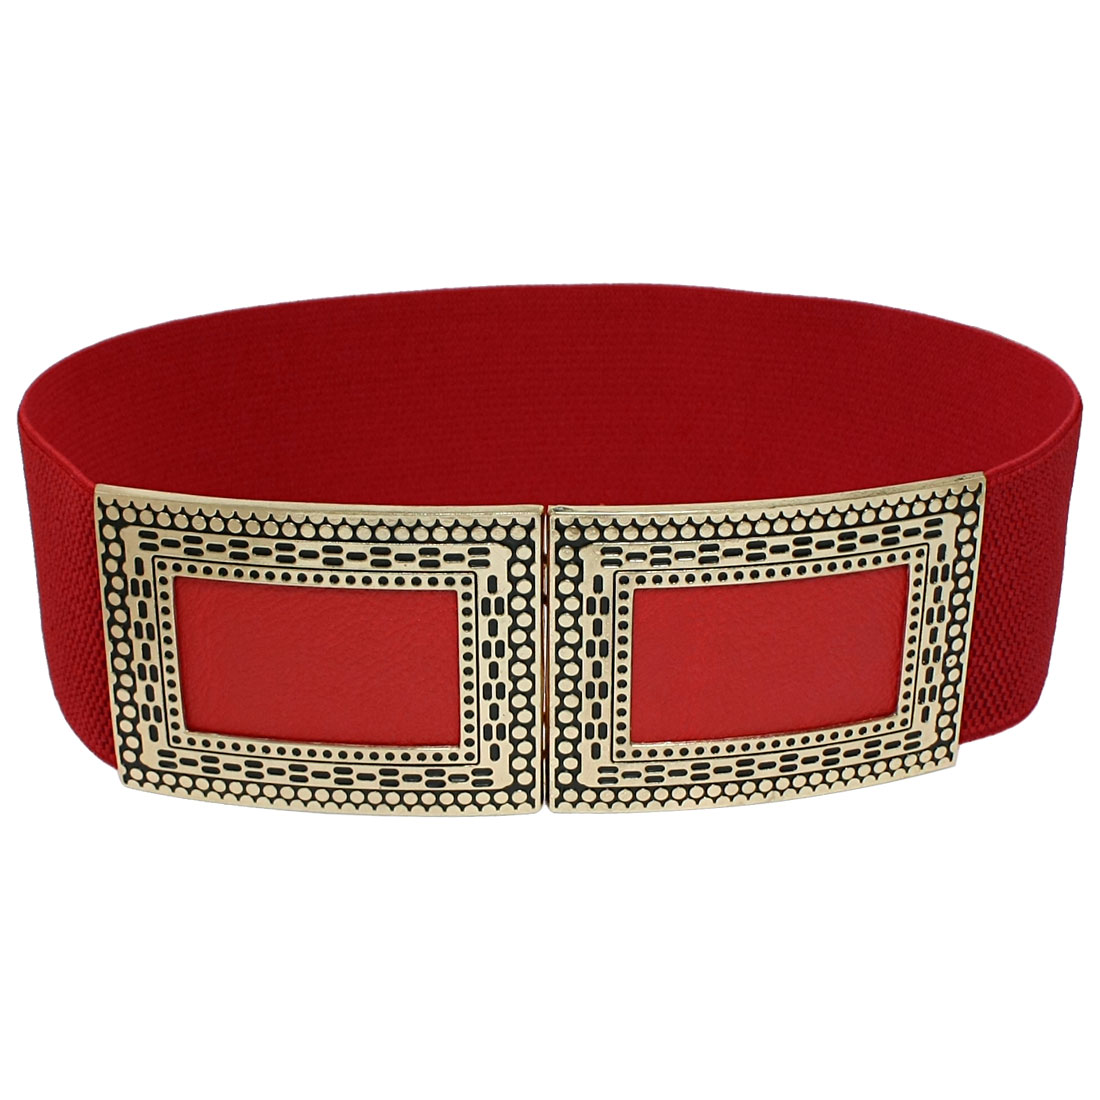 Woman Costume Metal Interlocking Buckle Cinch Band Waist Belt Red